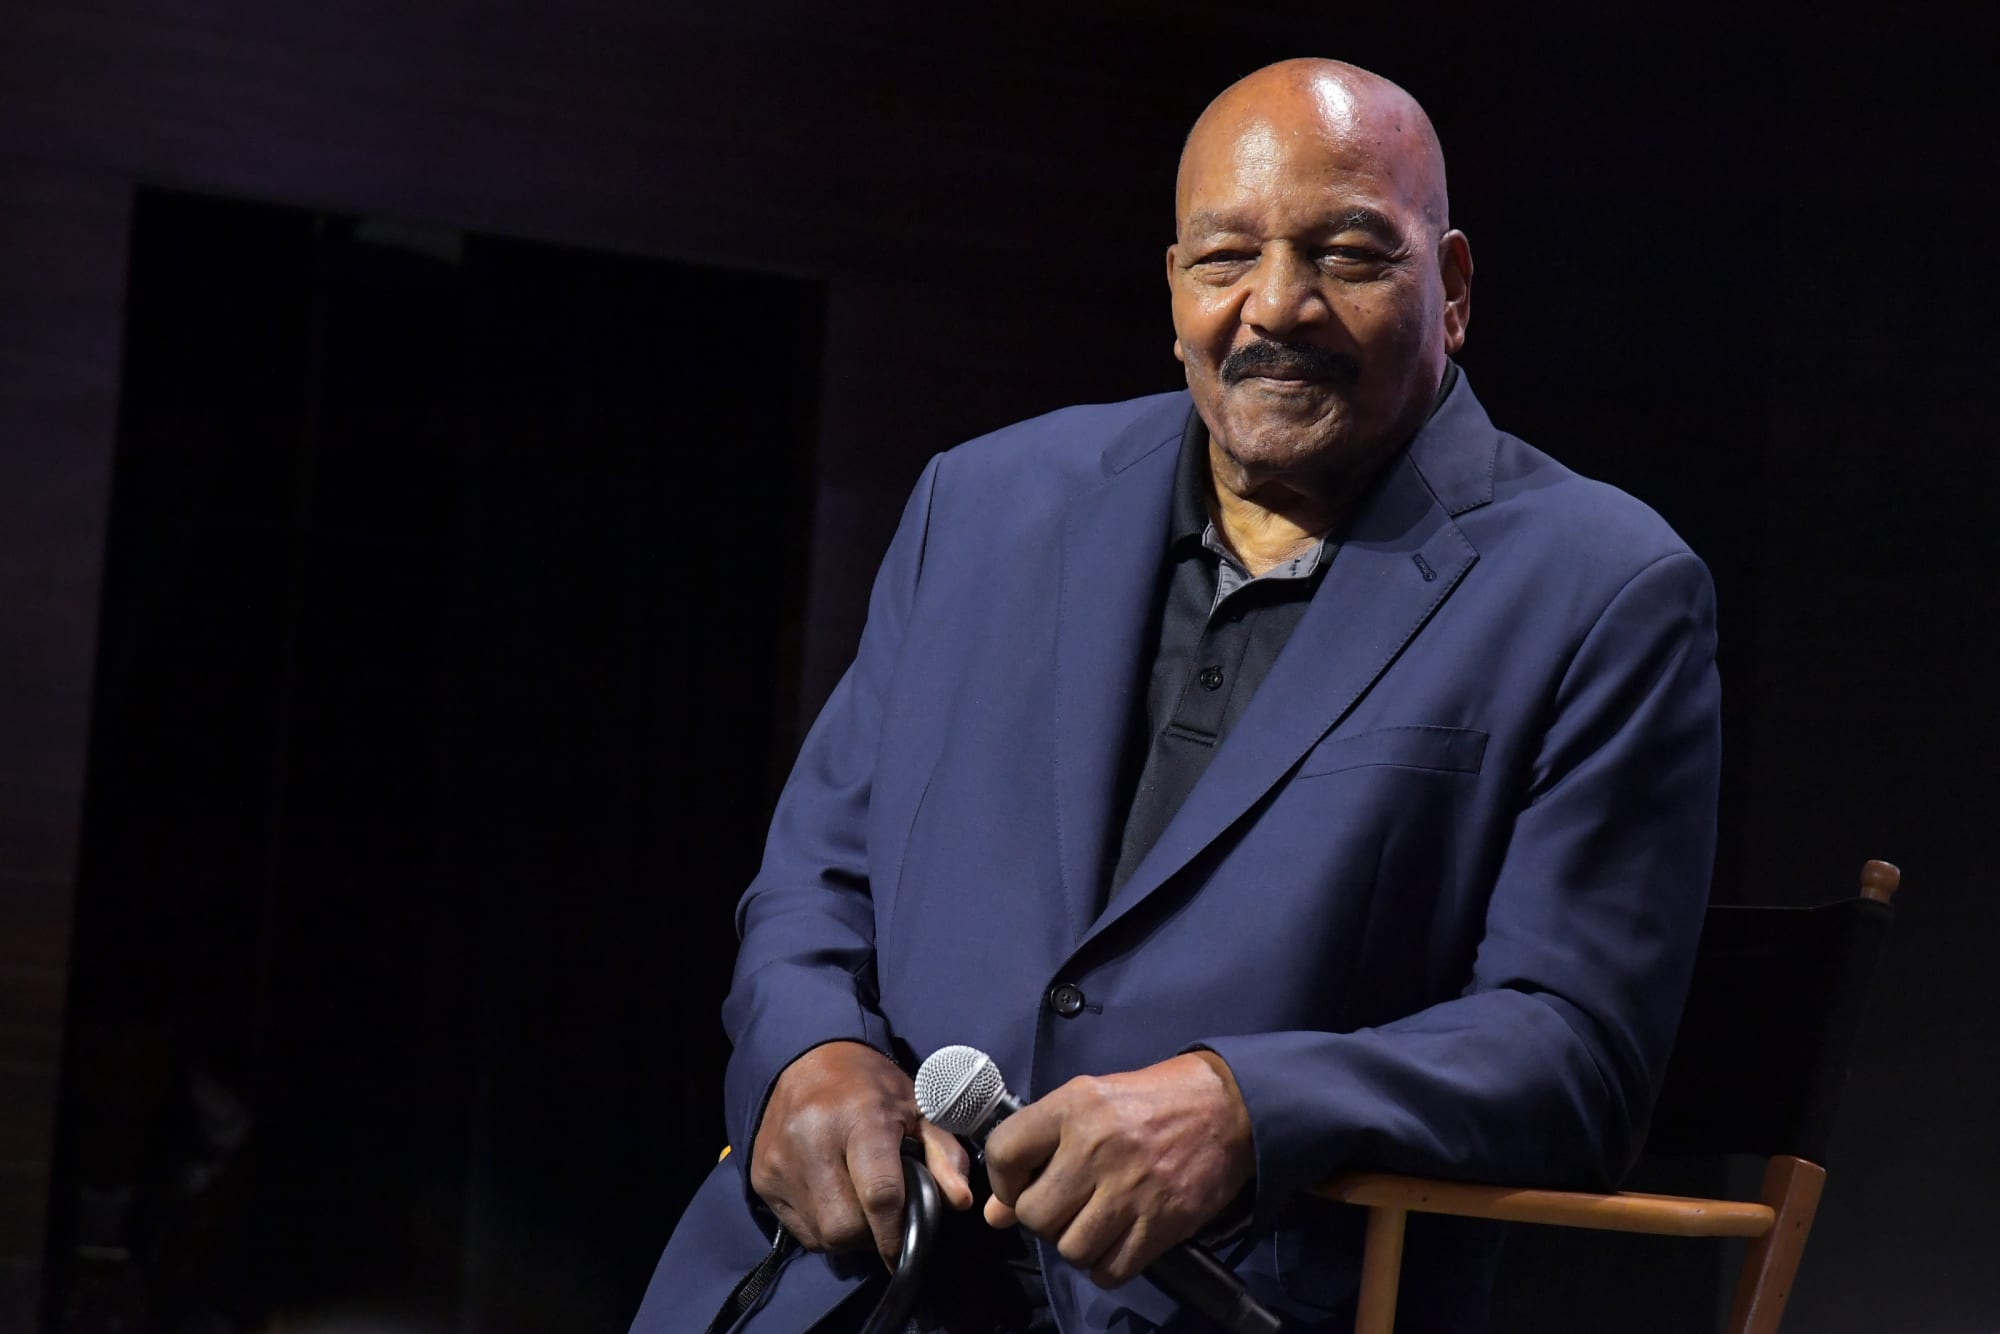 Syracuse football legend Jim Brown among 10 greats who retired too early